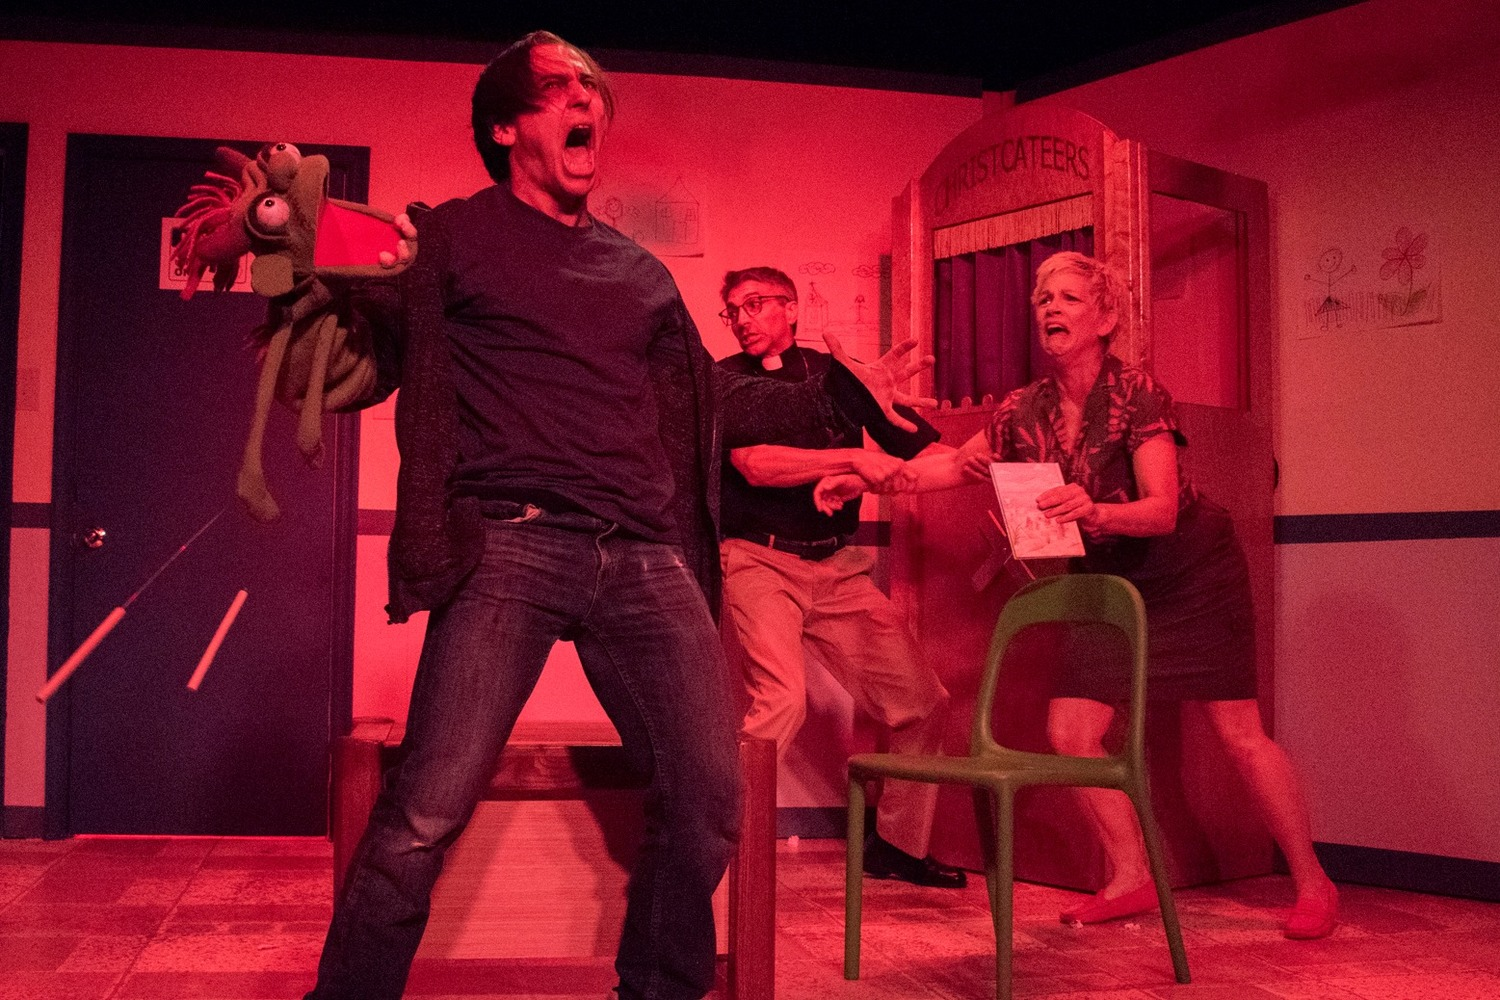 BWW Review: TheatreLAB and 5th Wall Theatre's HAND TO GOD is Savagely Funny!